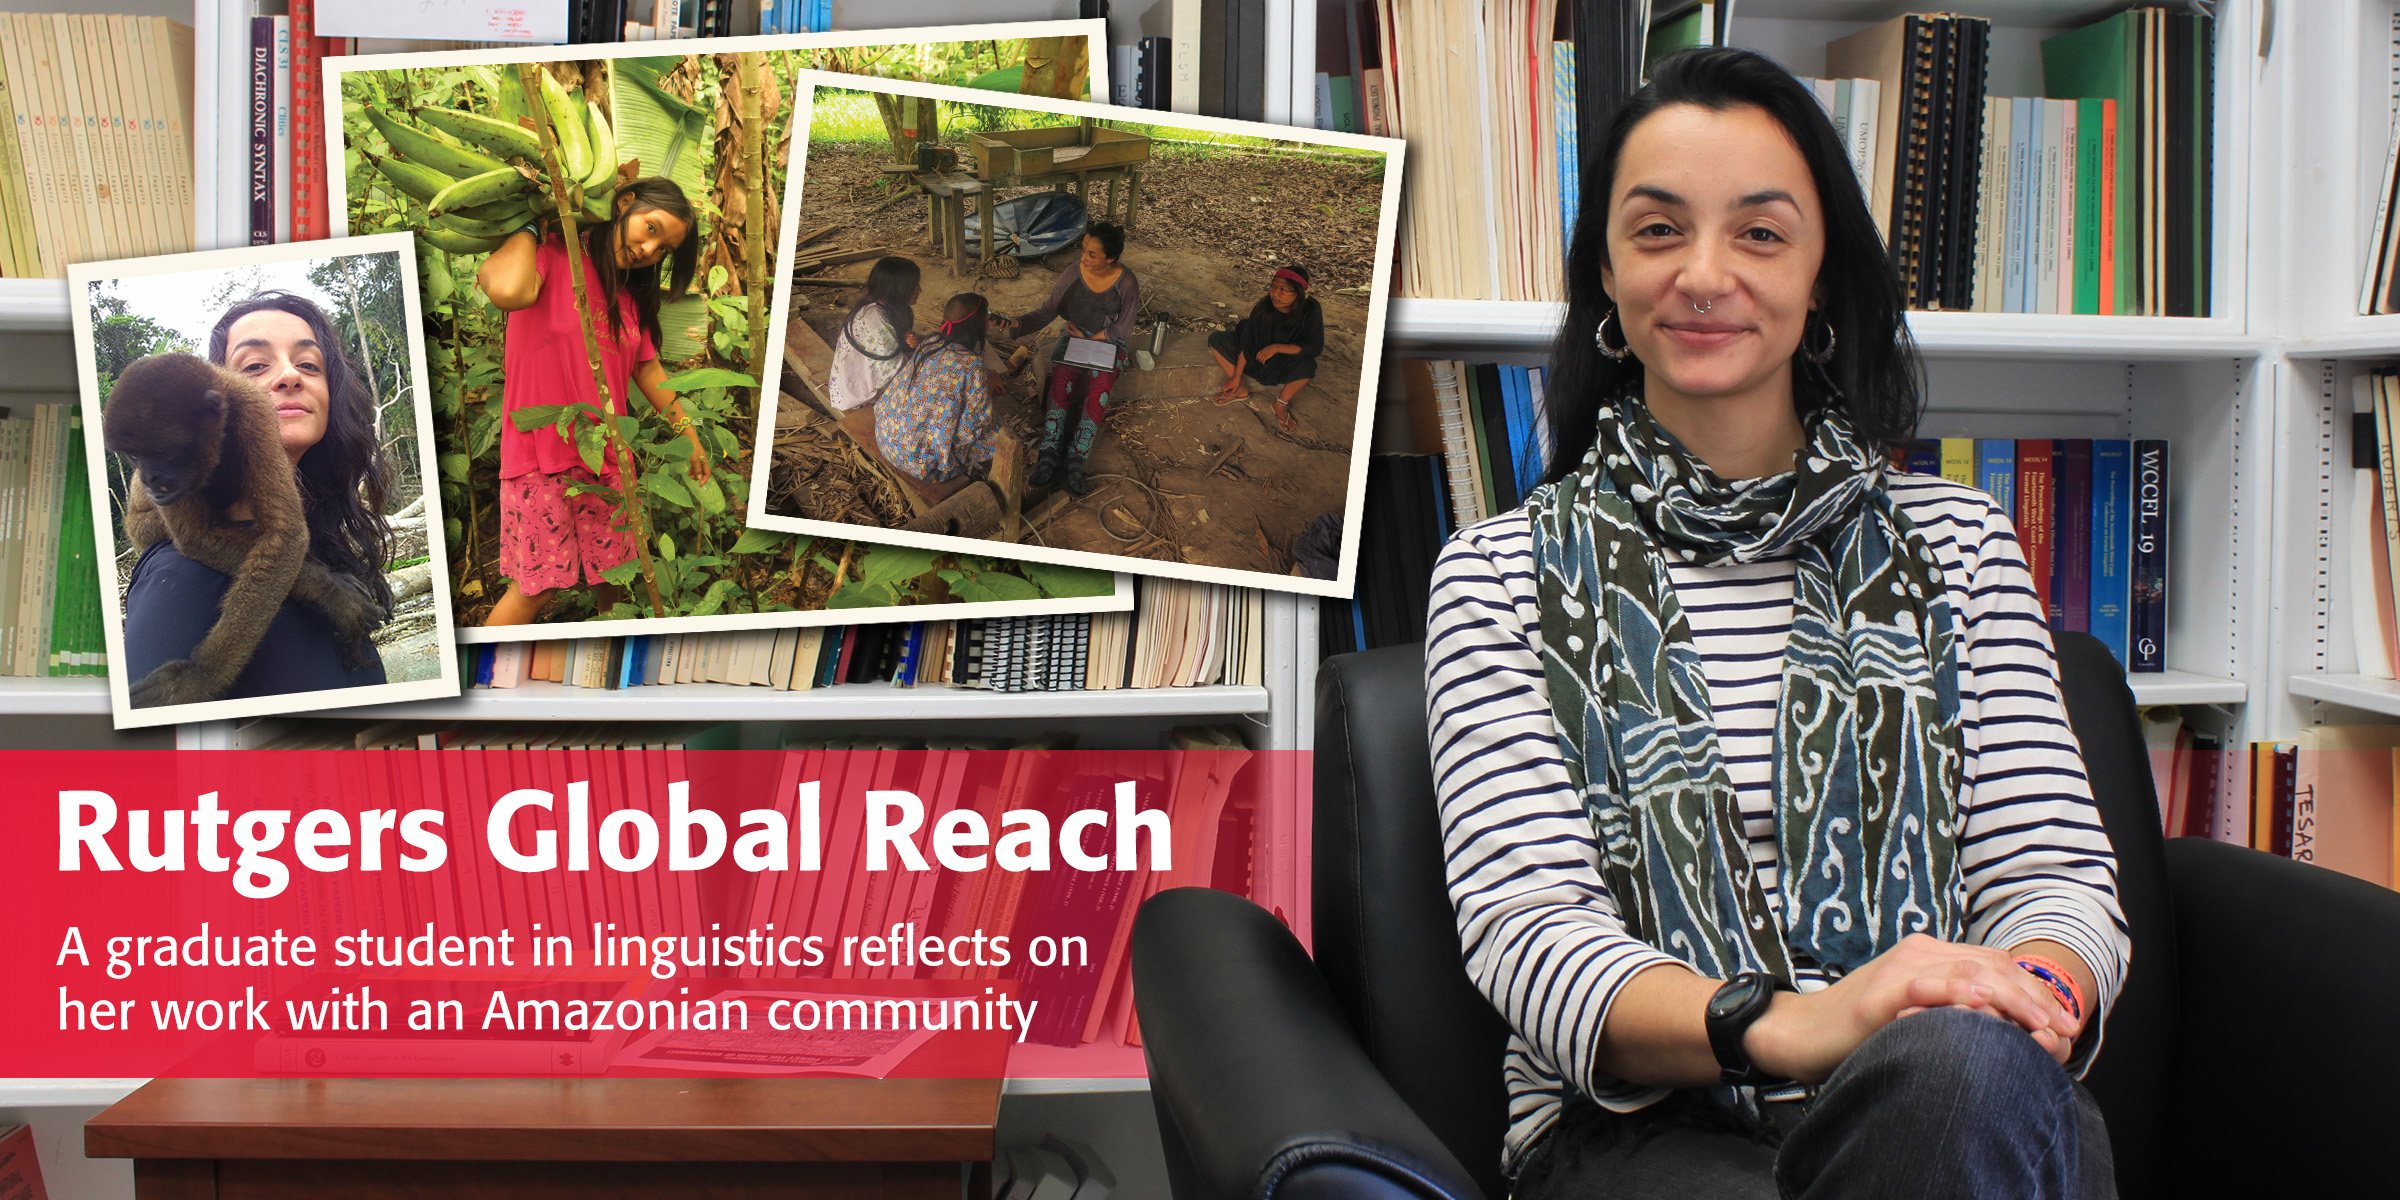 Rutgers Global Reach: A graduate student in linguistics reflects on her work with an Amazonian community